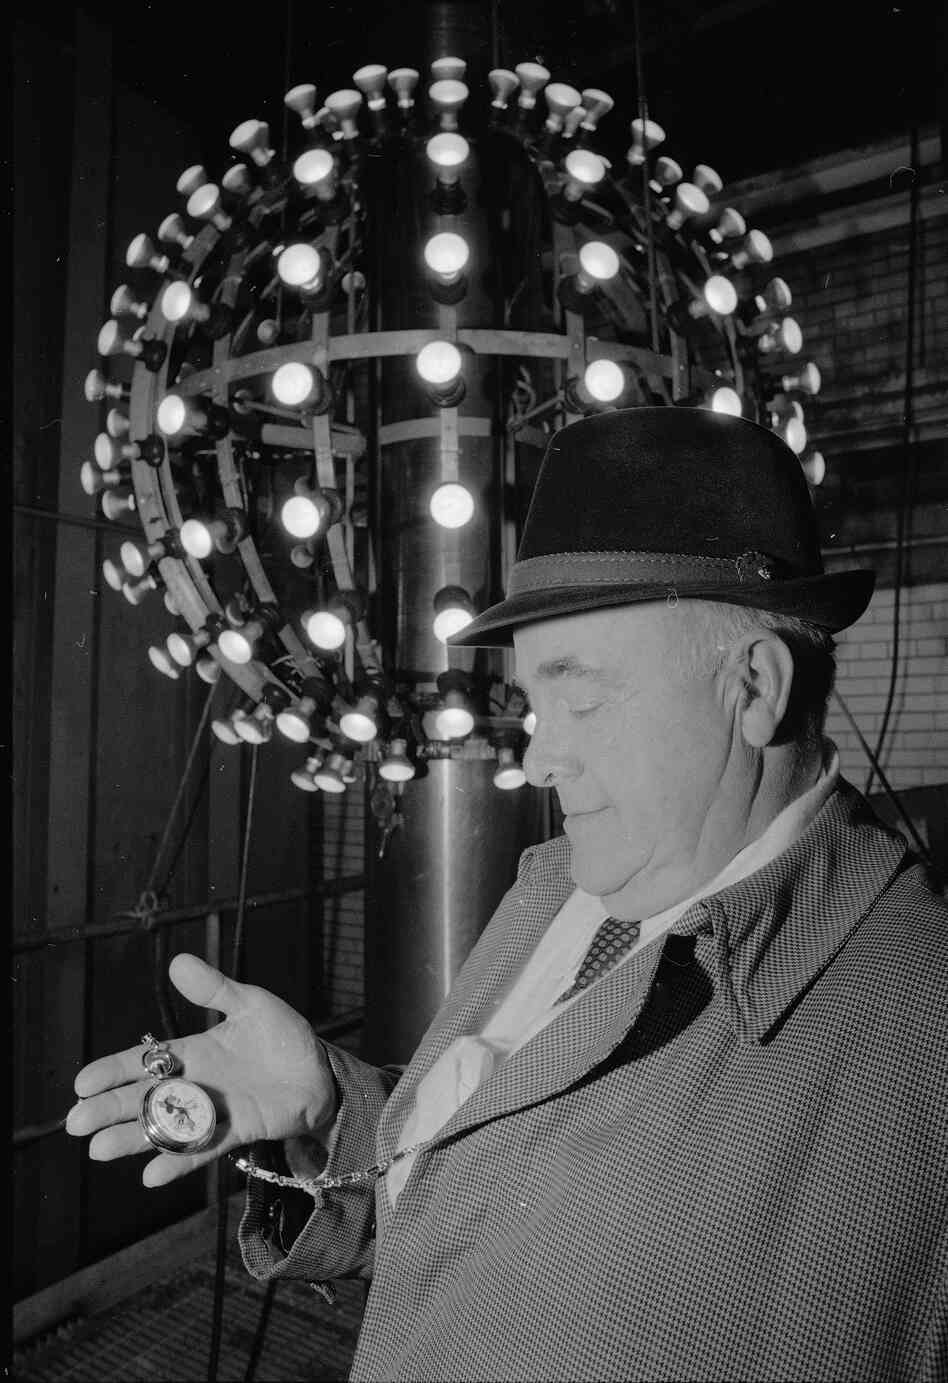 Russ Brown, superintendent of One Times Square, checks his watch a few hours before the ball is to be hoisted into position, Dec. 31, 1980. Brown officiated over the ball dropping for 16 years, and retired with the entry of 1981.